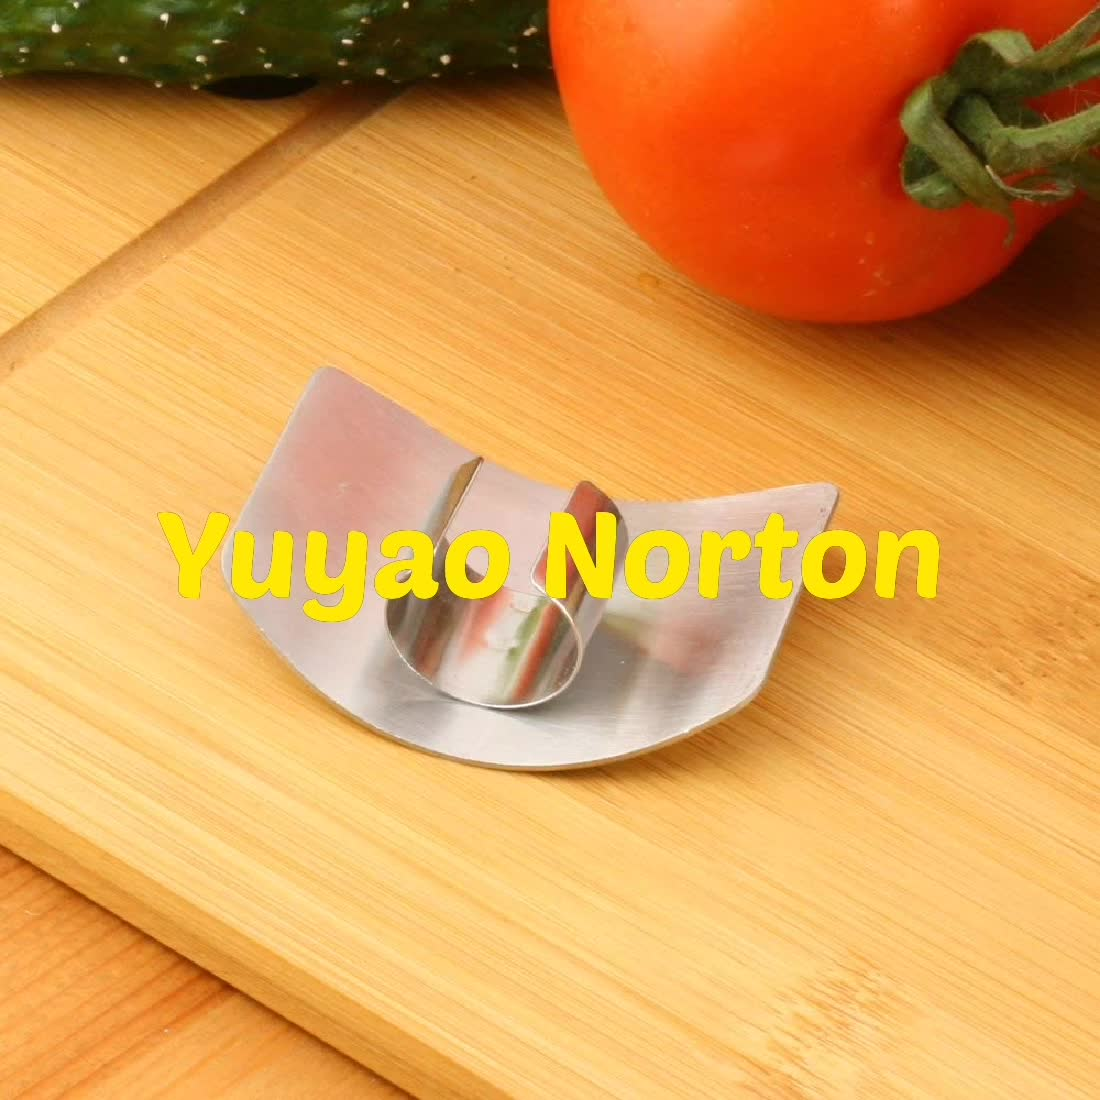 Household Stainless Steel Finger Protector portable Kitchen tools NEW TV products in 2019